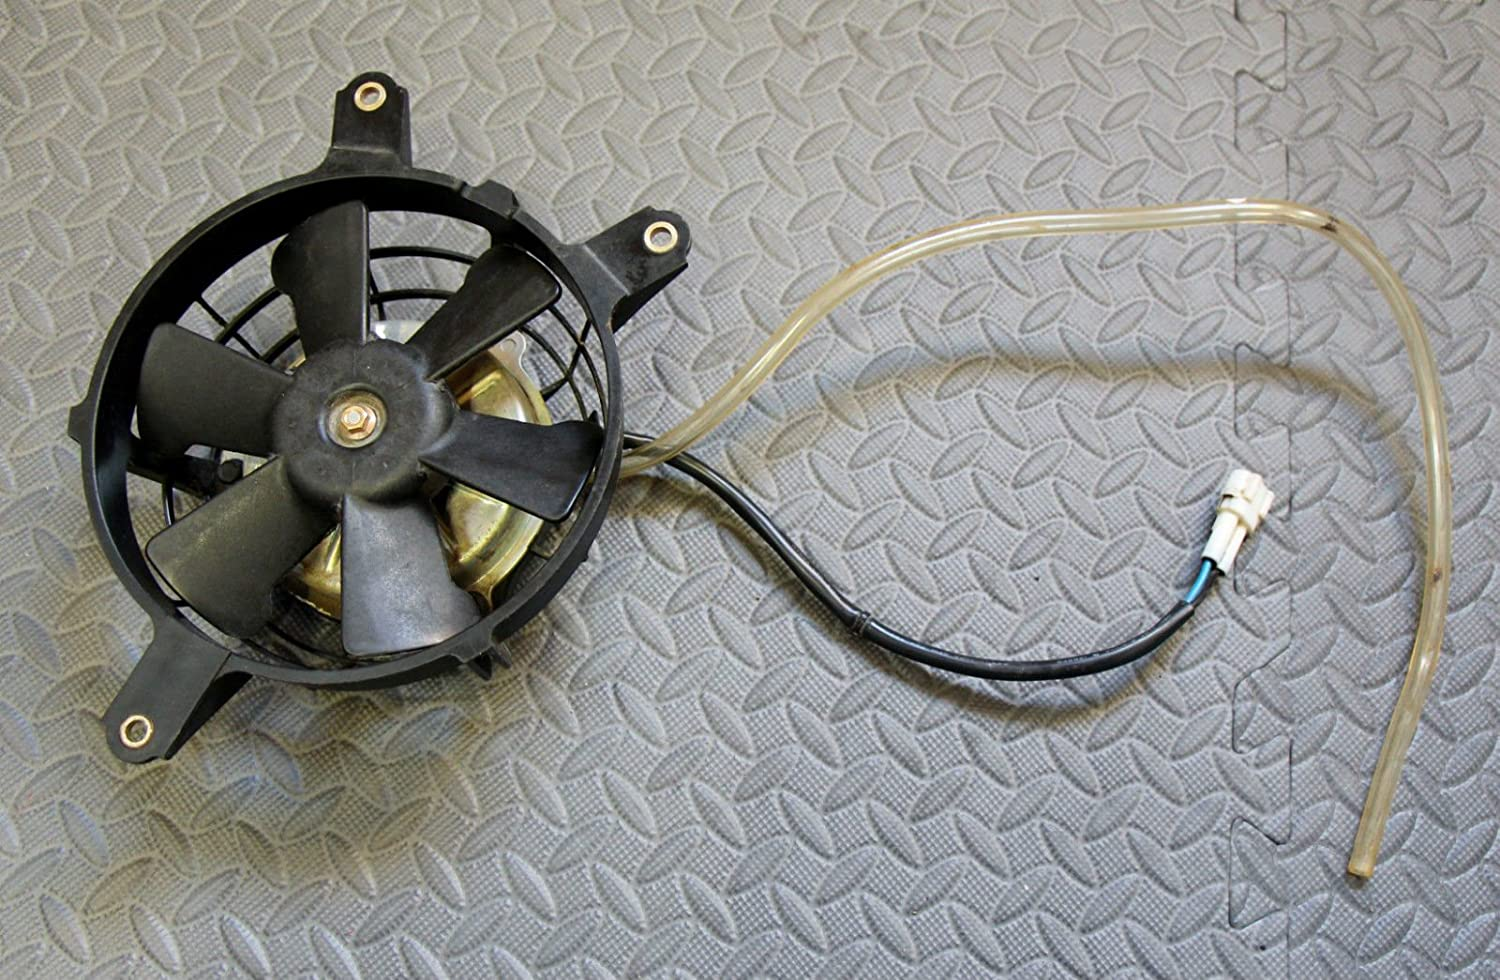 Amazon.com: 2004 2009 Yamaha YFZ450 YFZ 450 Radiator coolant fan & wiring 04  05 06 07 08 09: Everything Else